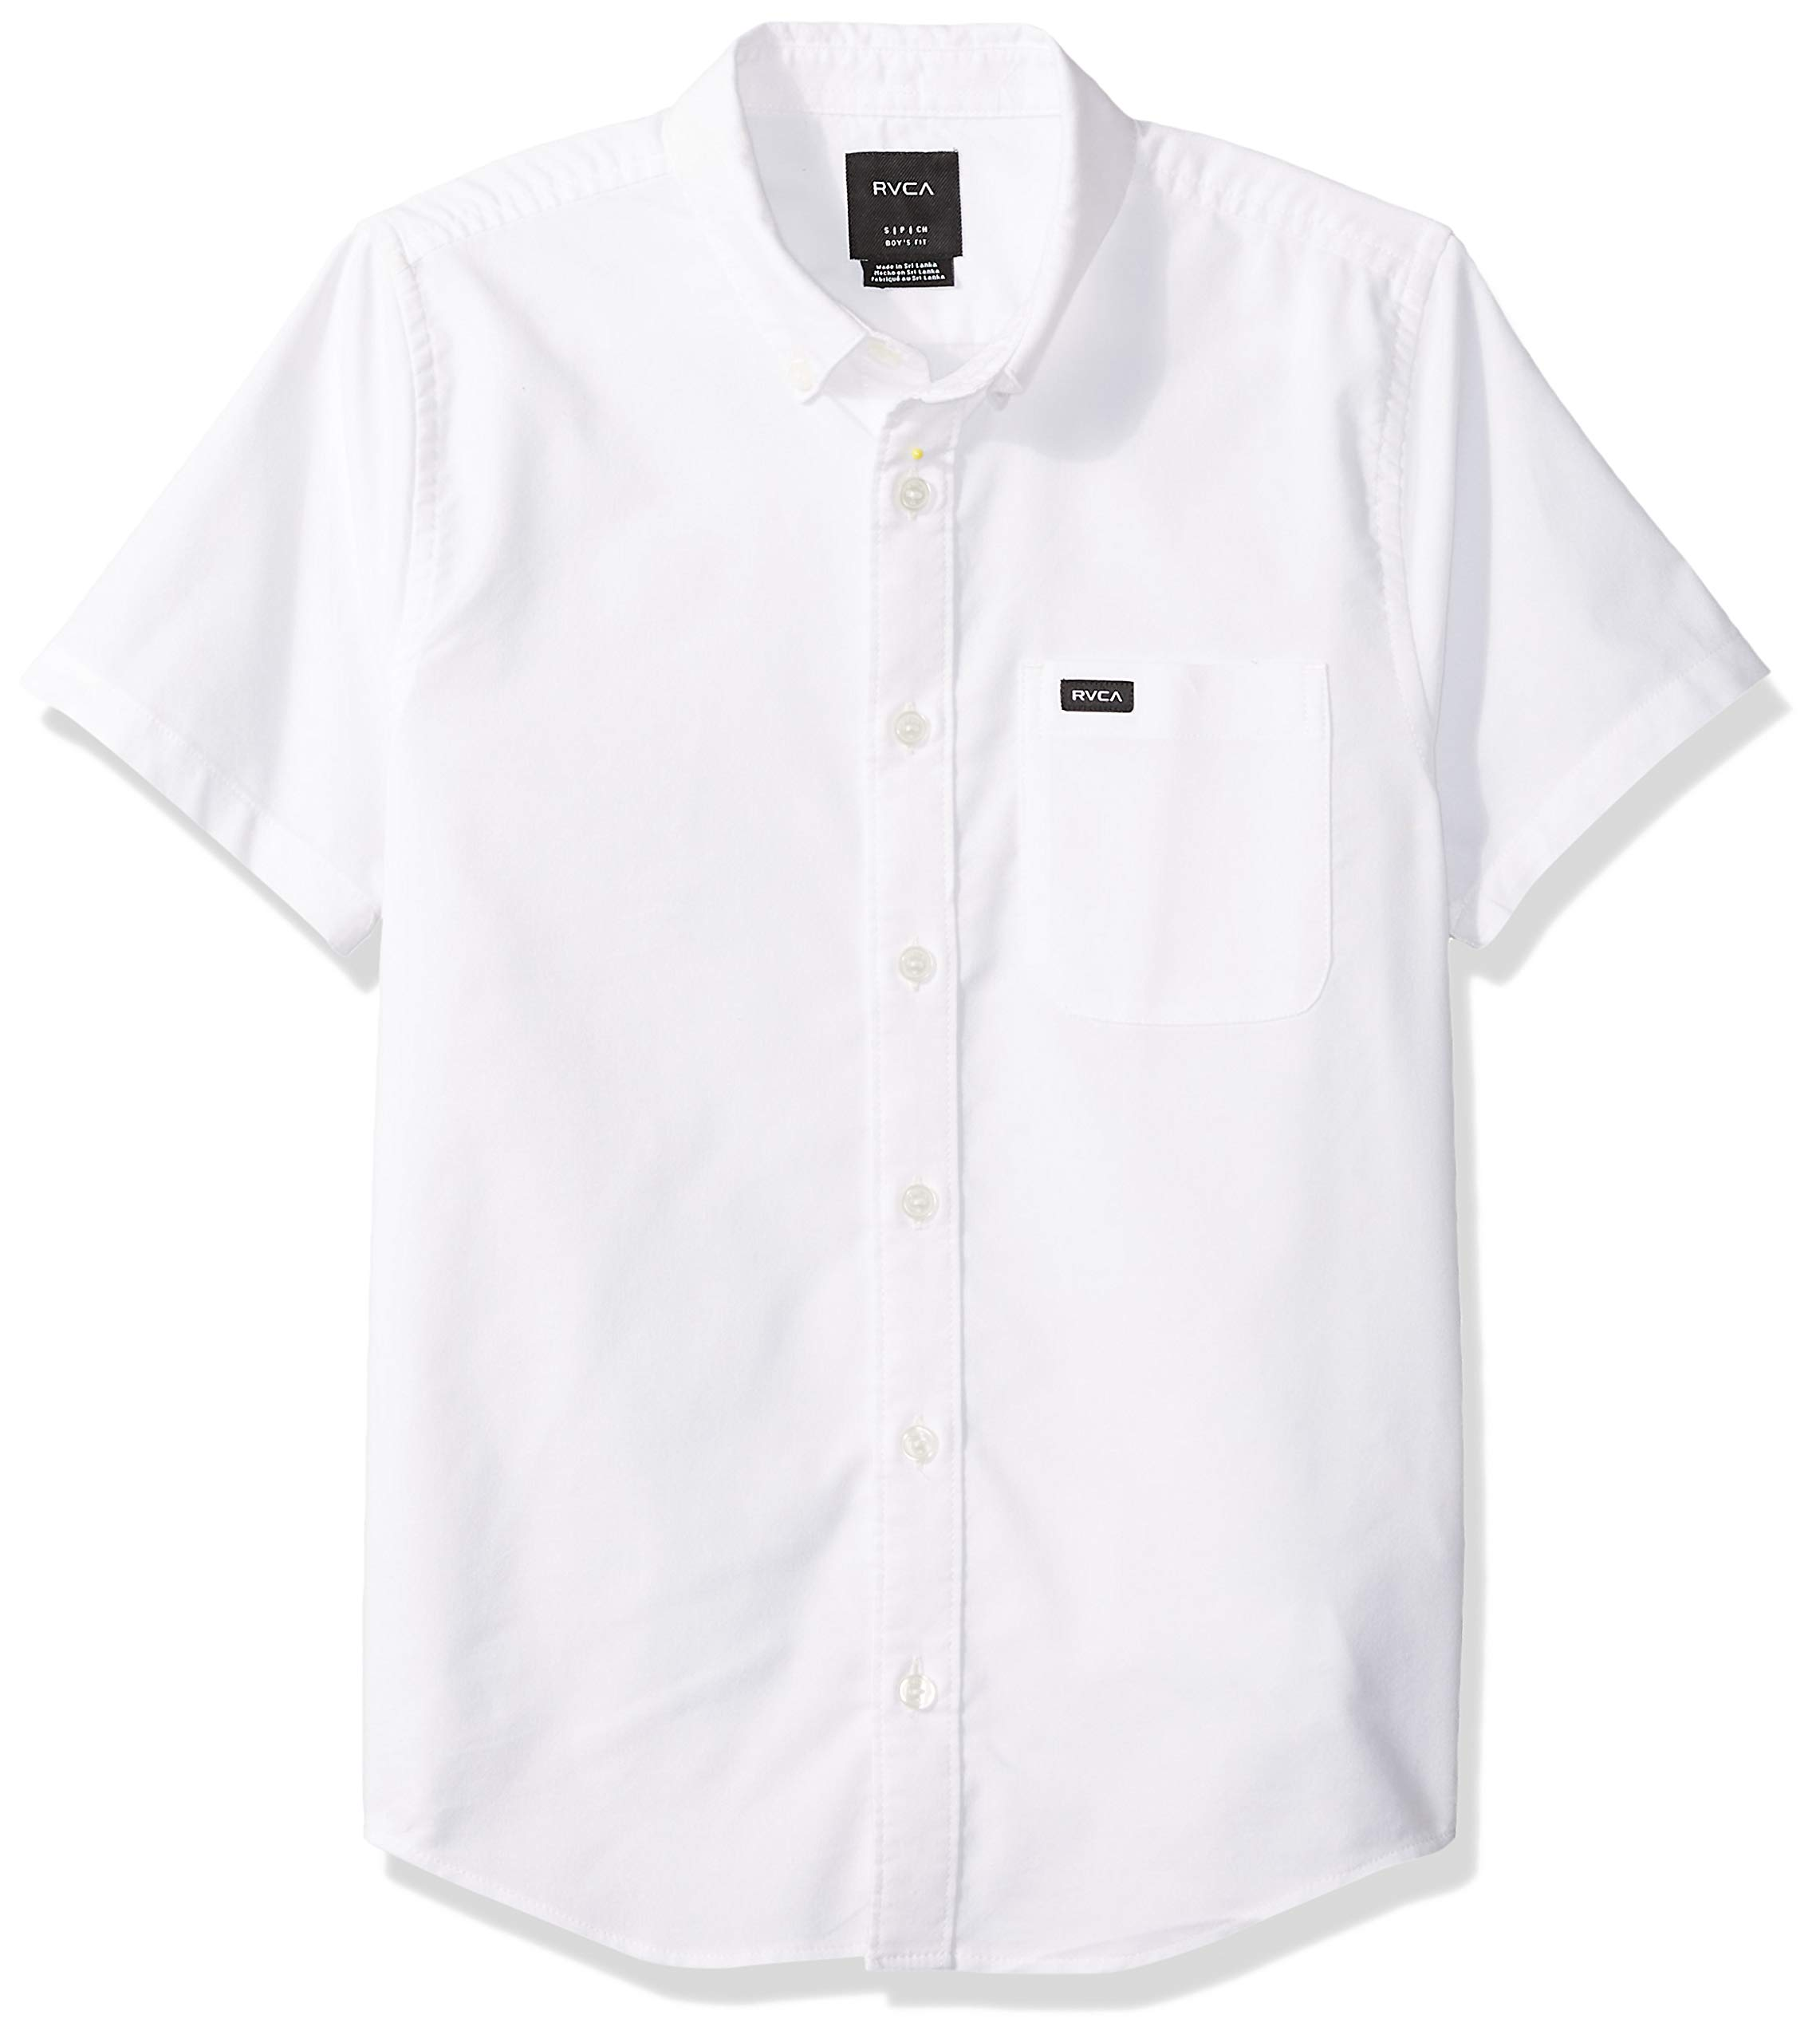 RVCA Boys Thatll DO Stretch Short Sleeve Woven Button UP Shirt, White M by RVCA (Image #1)